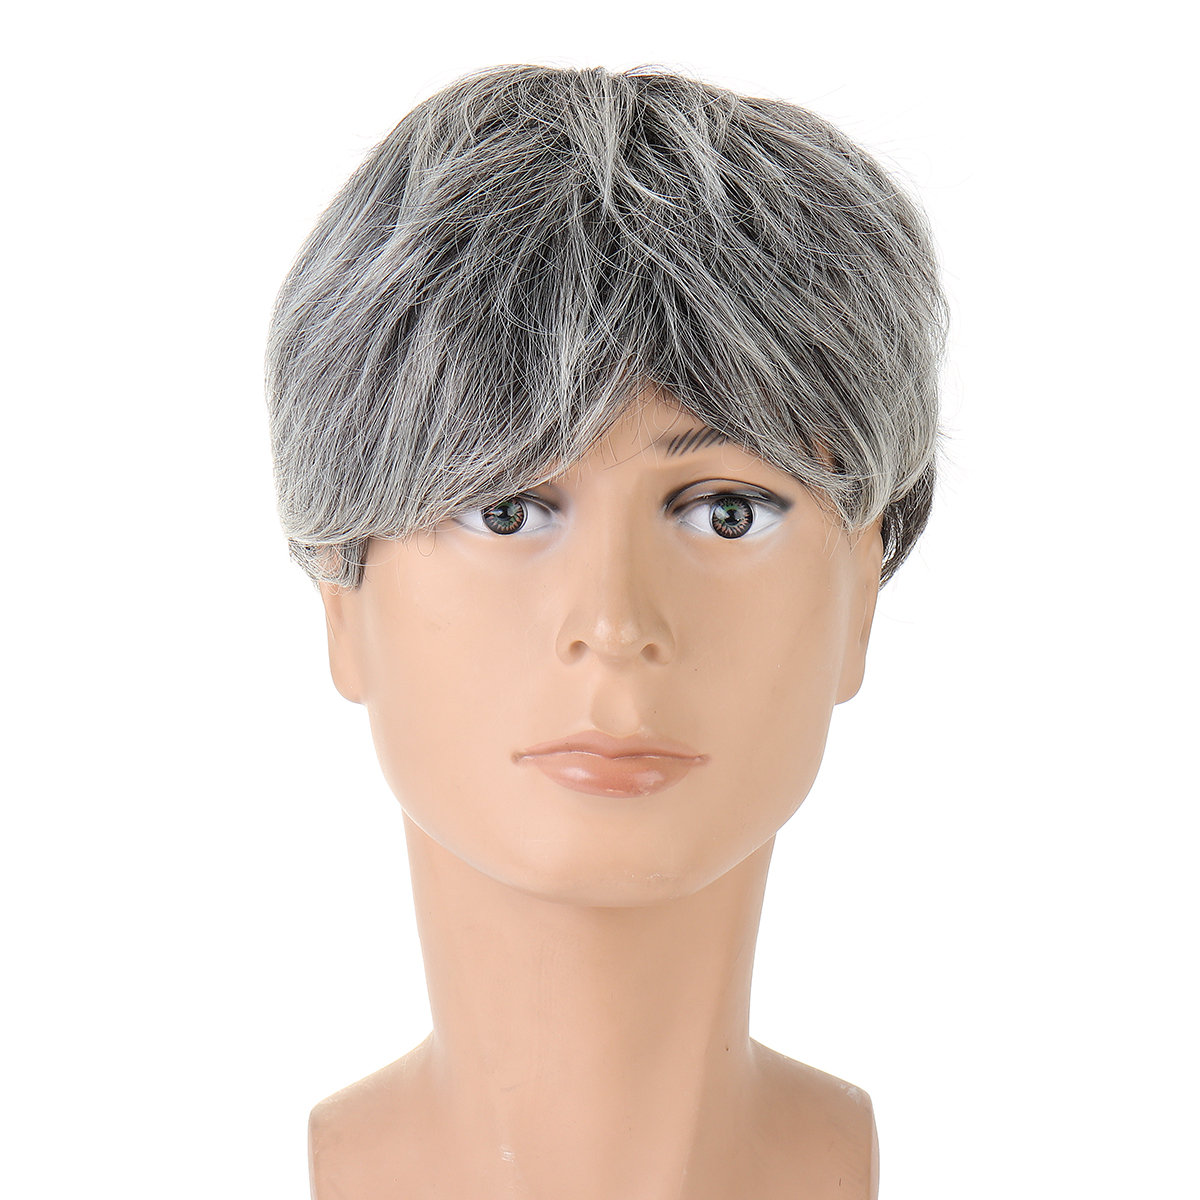 Synthetic_Wigs_Mens_MiddleAged_Short_Straight_Hair_Wigs_Silver_Gray_Wig_Props_Wig_Headgear